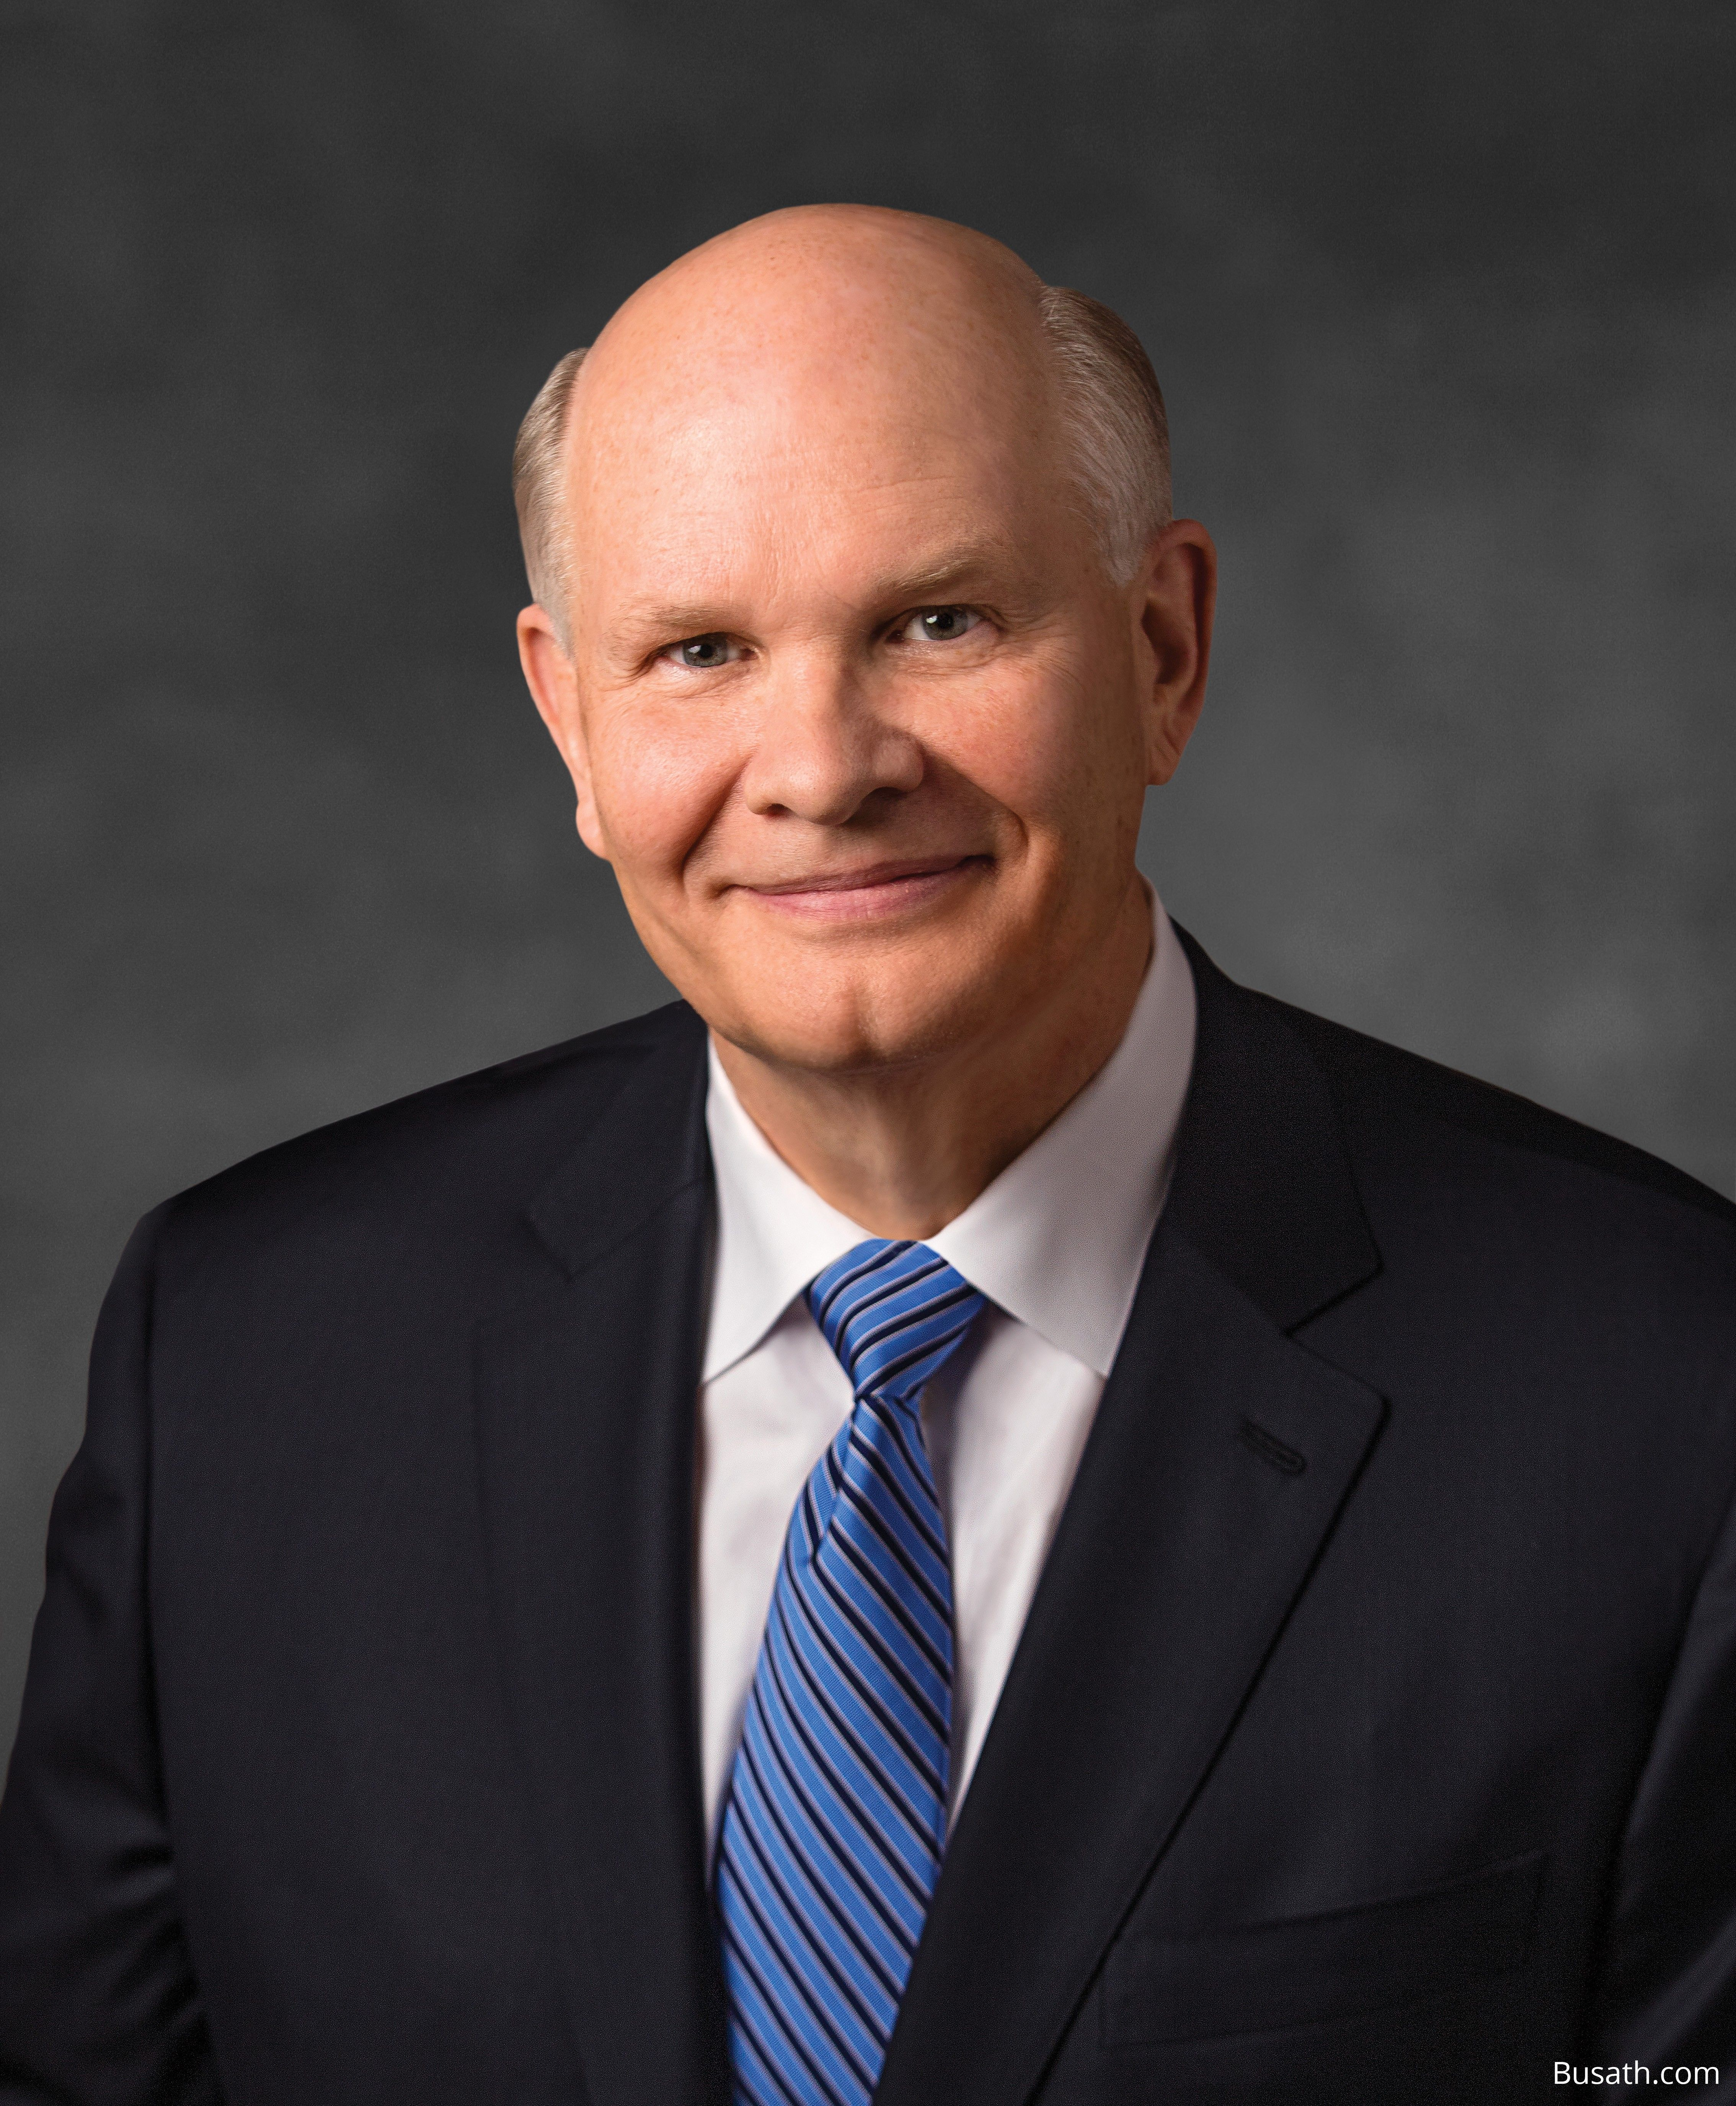 The Official Portrait of Dale G. Renlund.